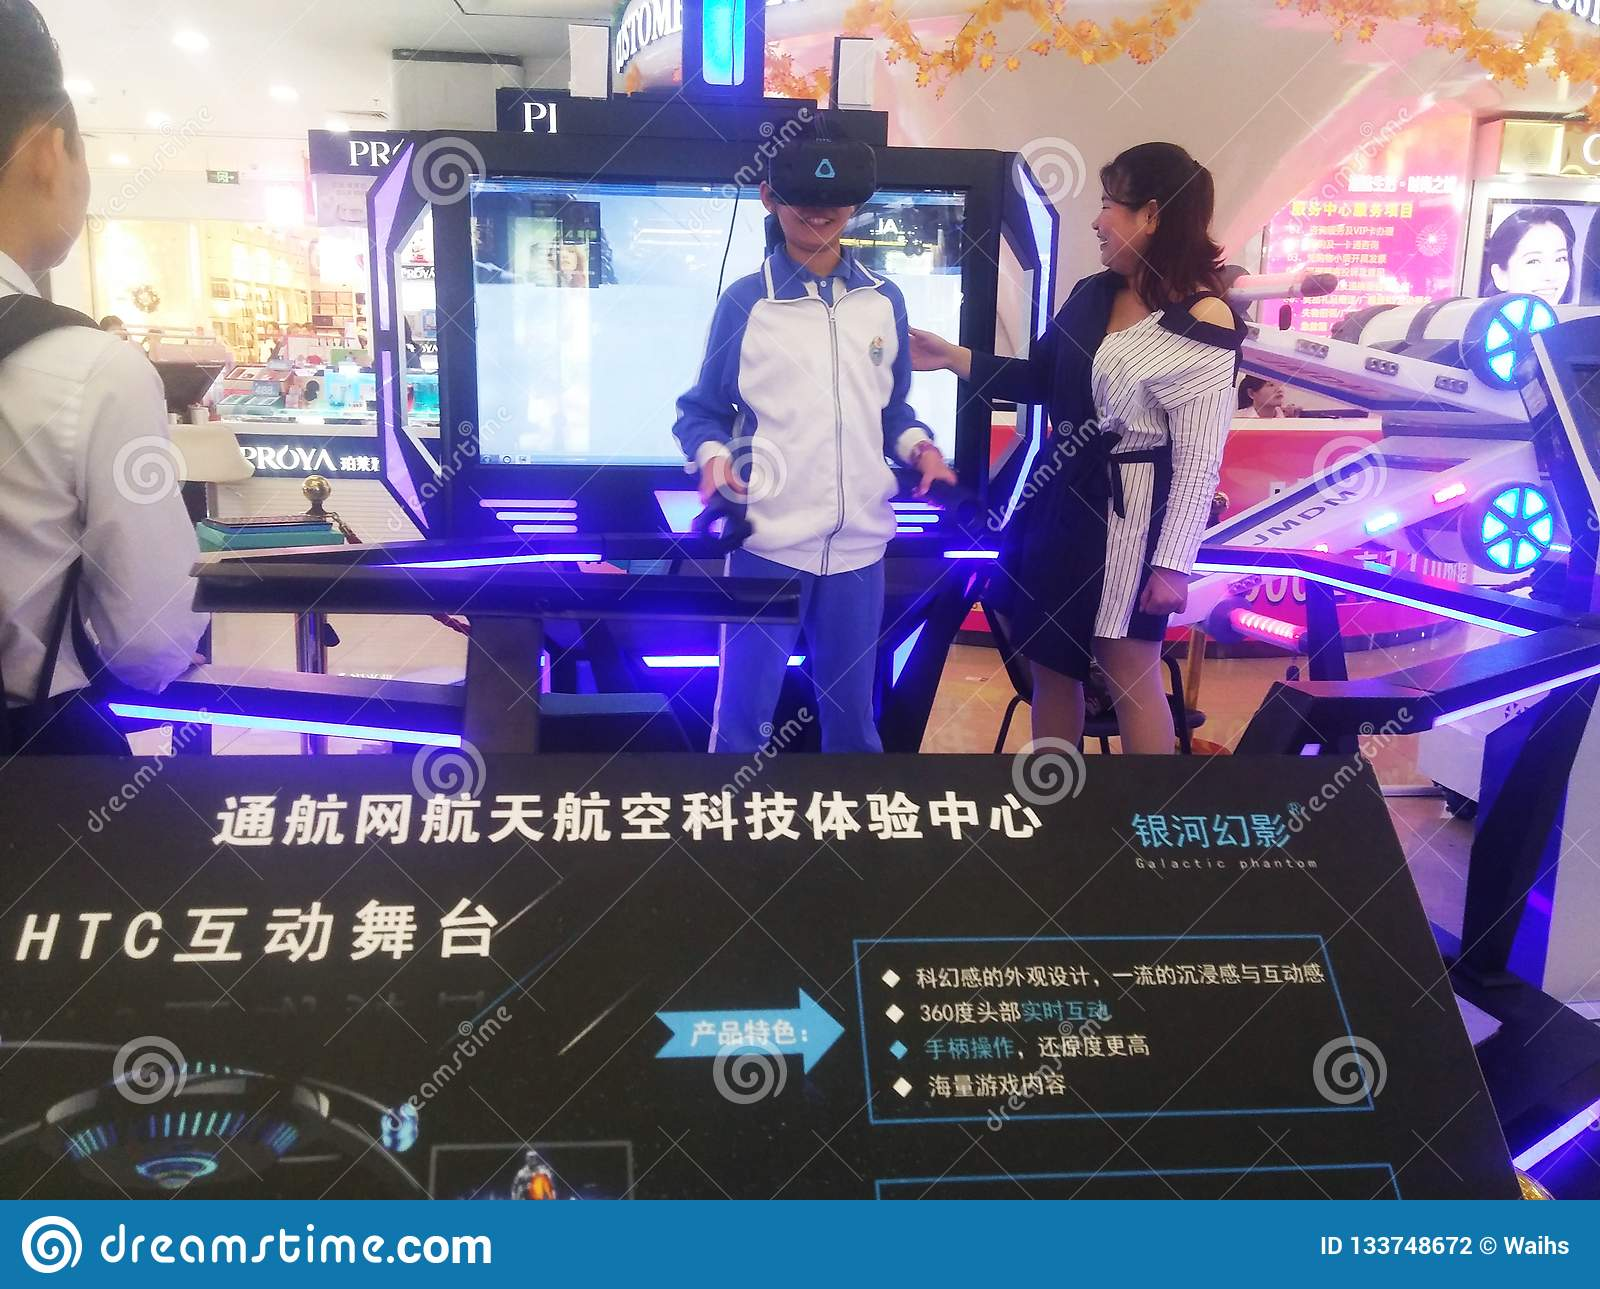 Shenzhen, China: aerospace science and technology experience activities, model space equipment